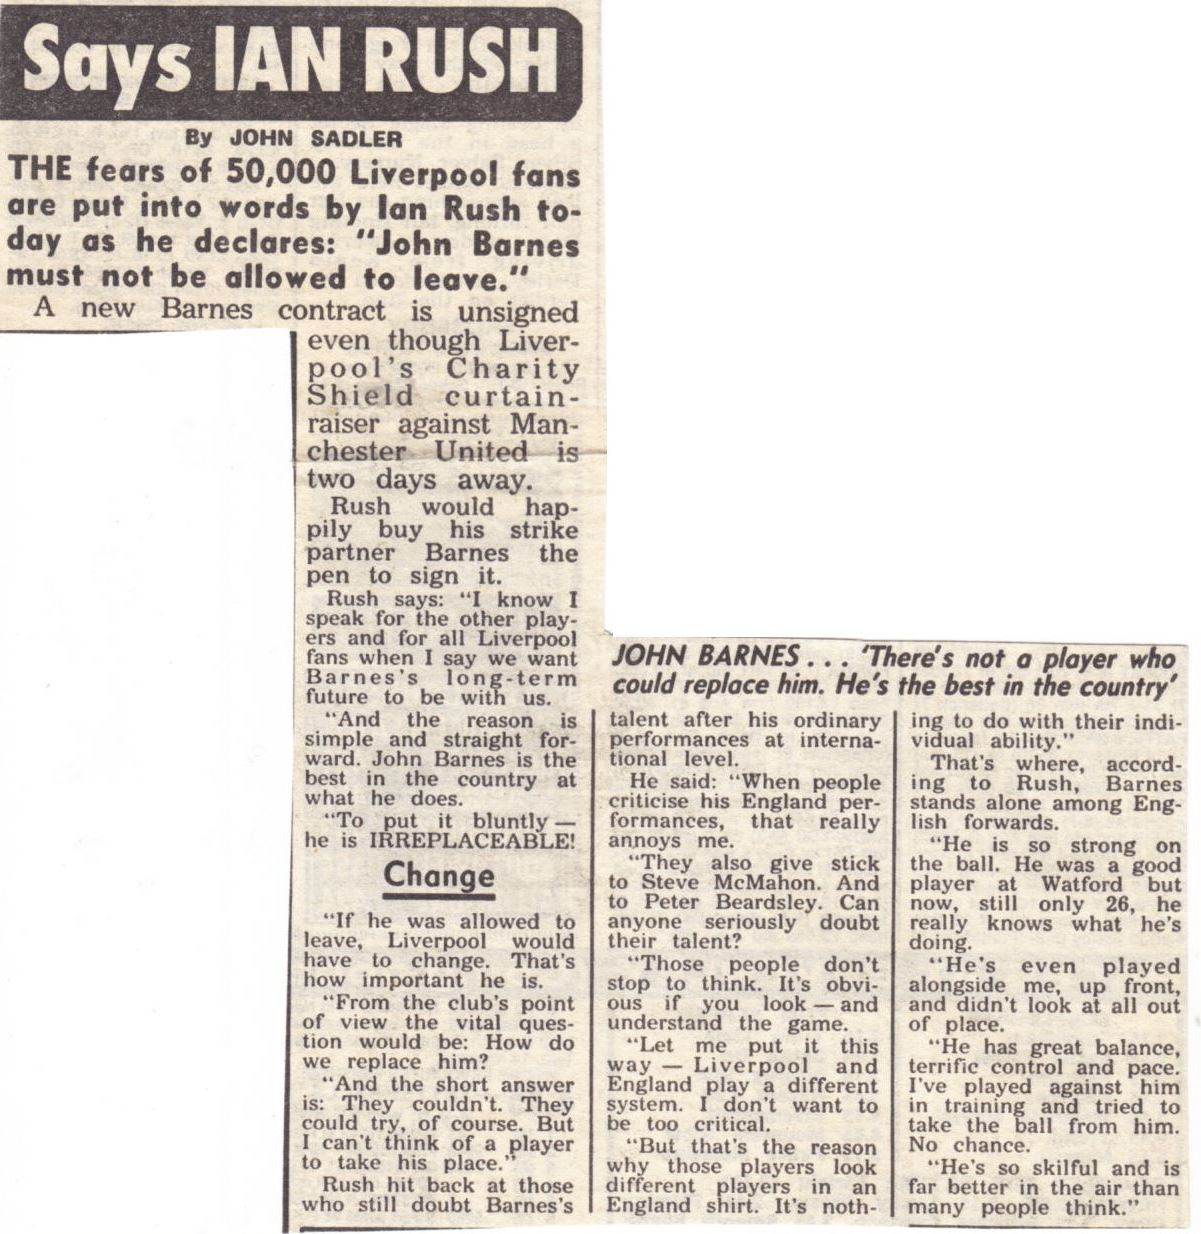 Barnes must not be allowed to leave, says Ian Rush - 1990